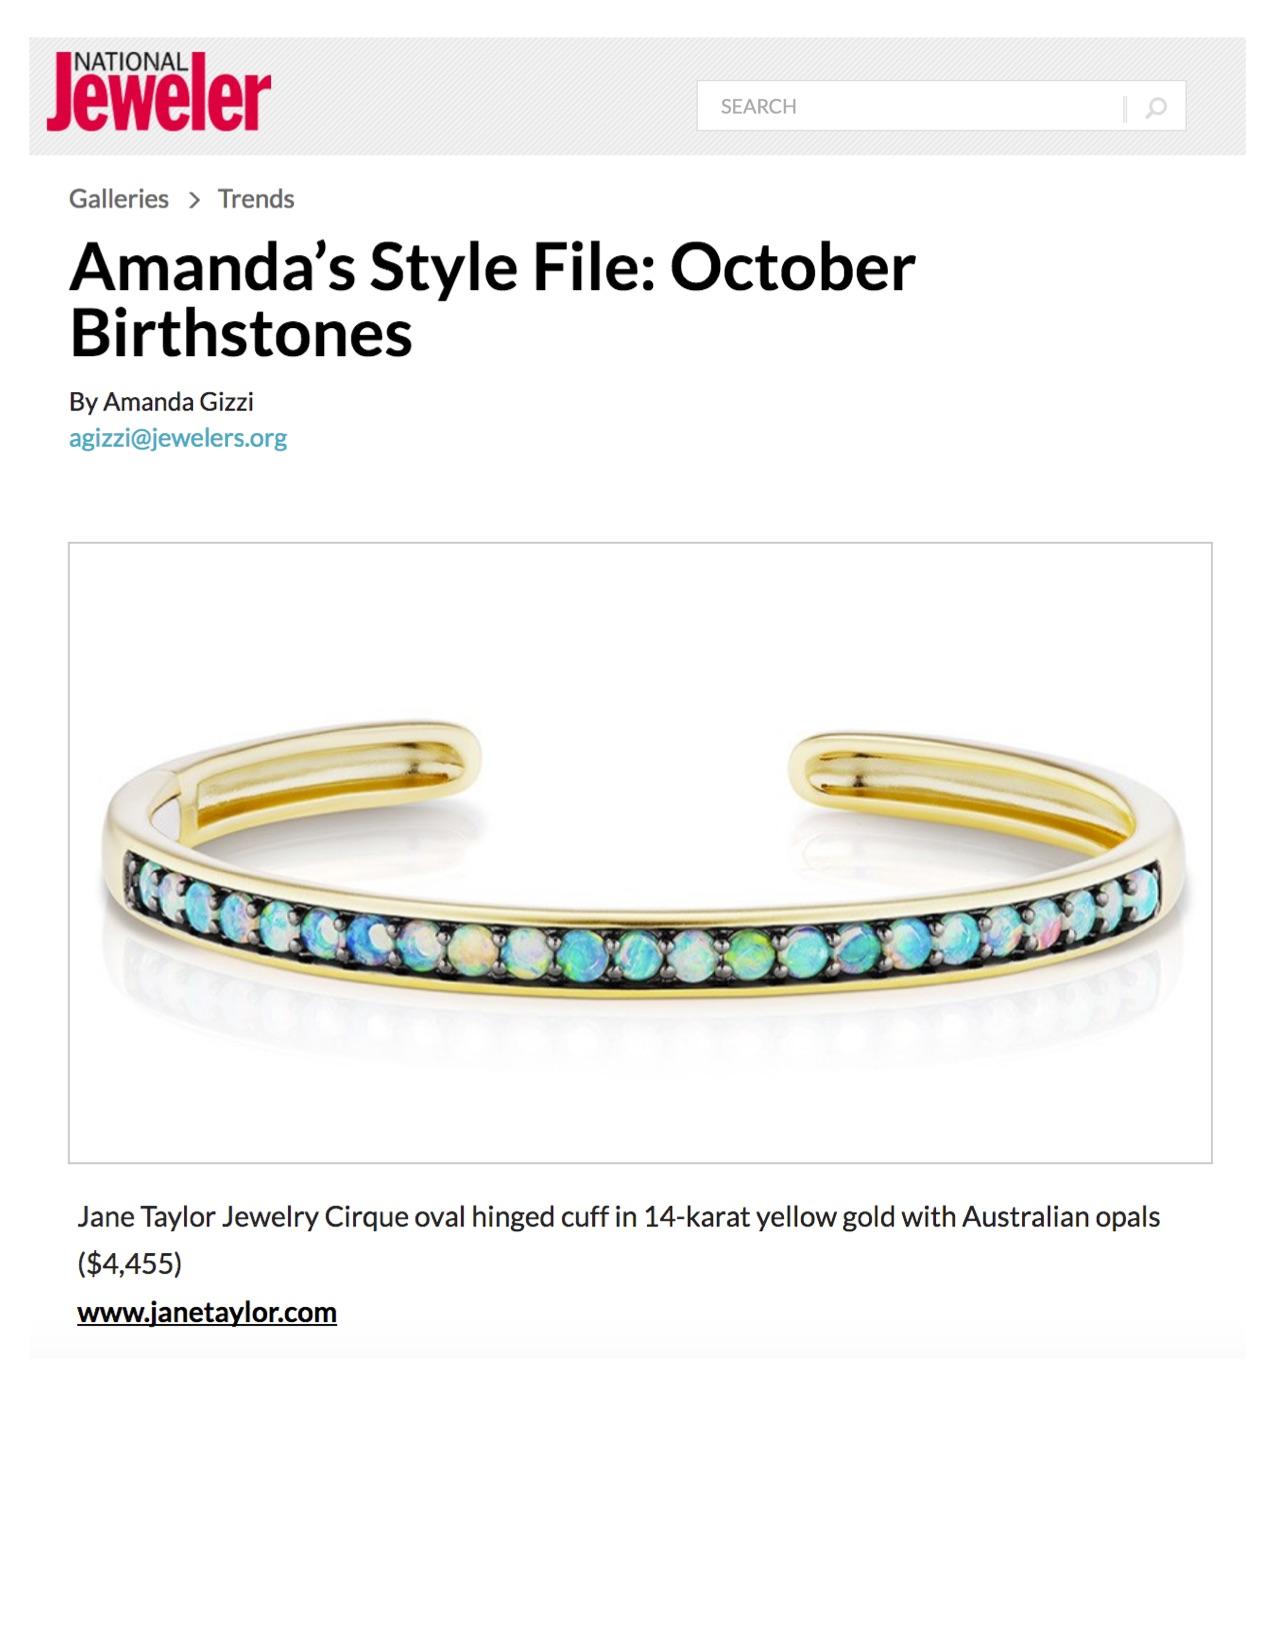 Jane Taylor Cirque Oval Hinged Cuff with Opals on NationalJeweler.com